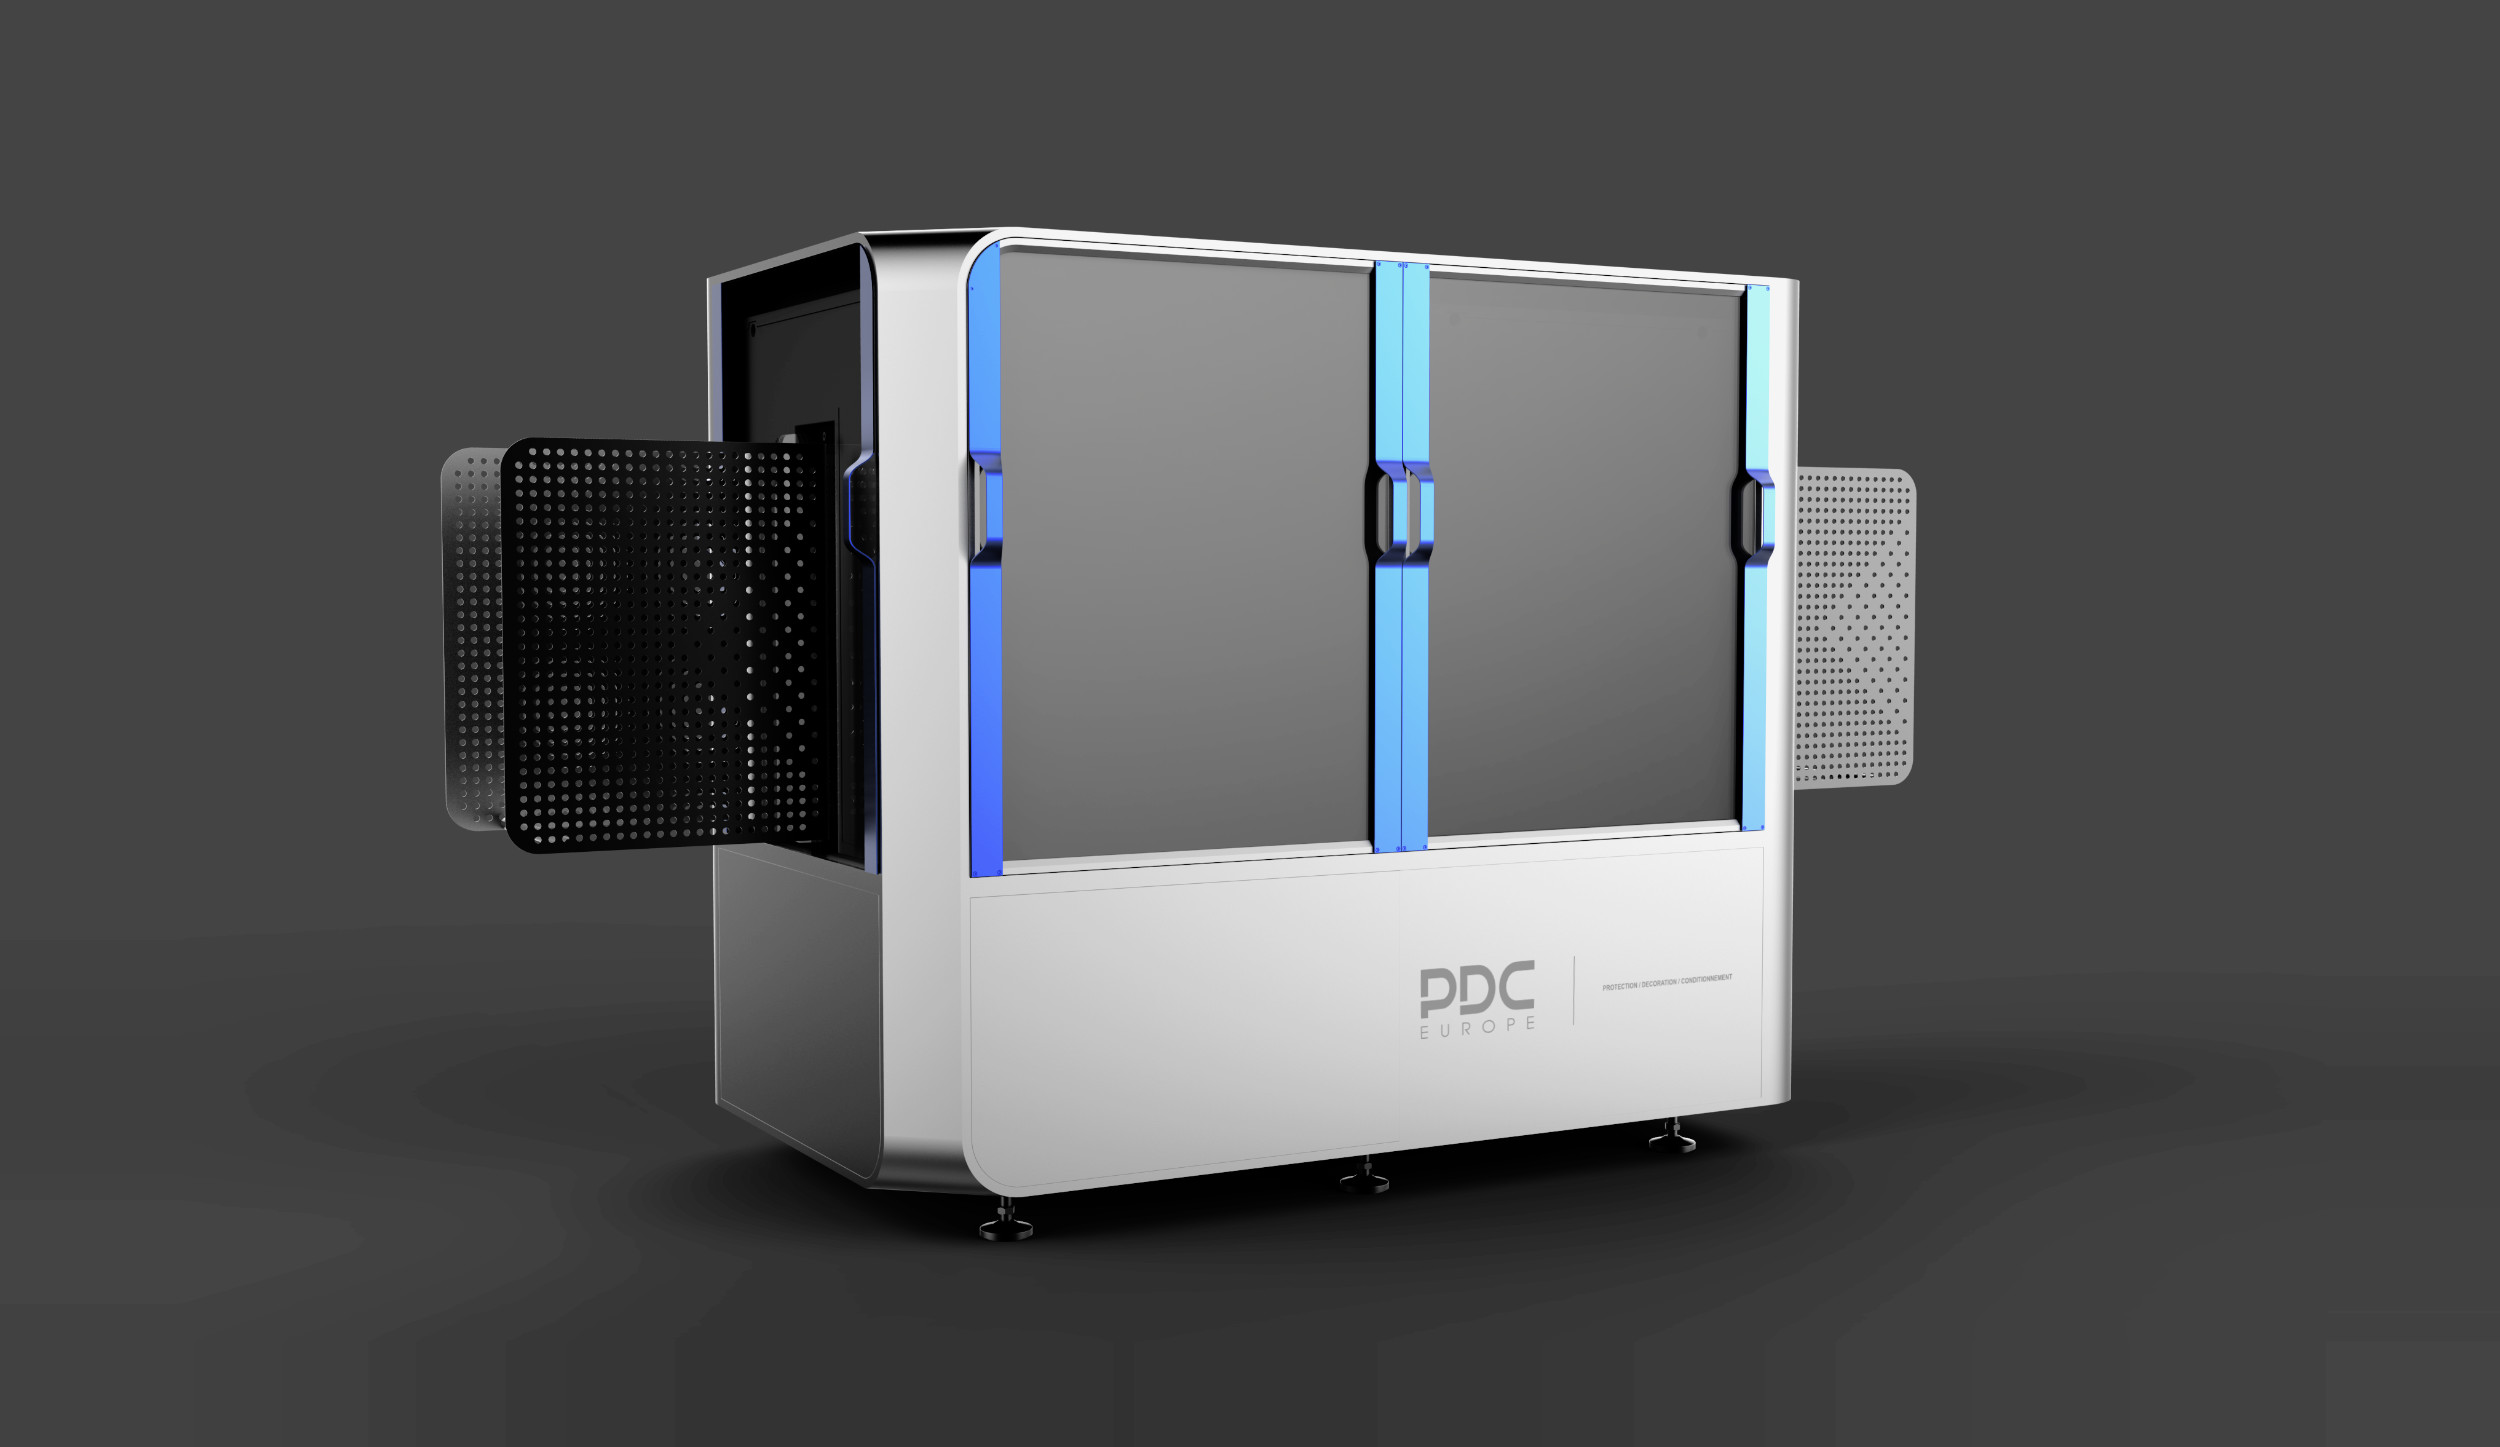 PDC europe sleeving systems